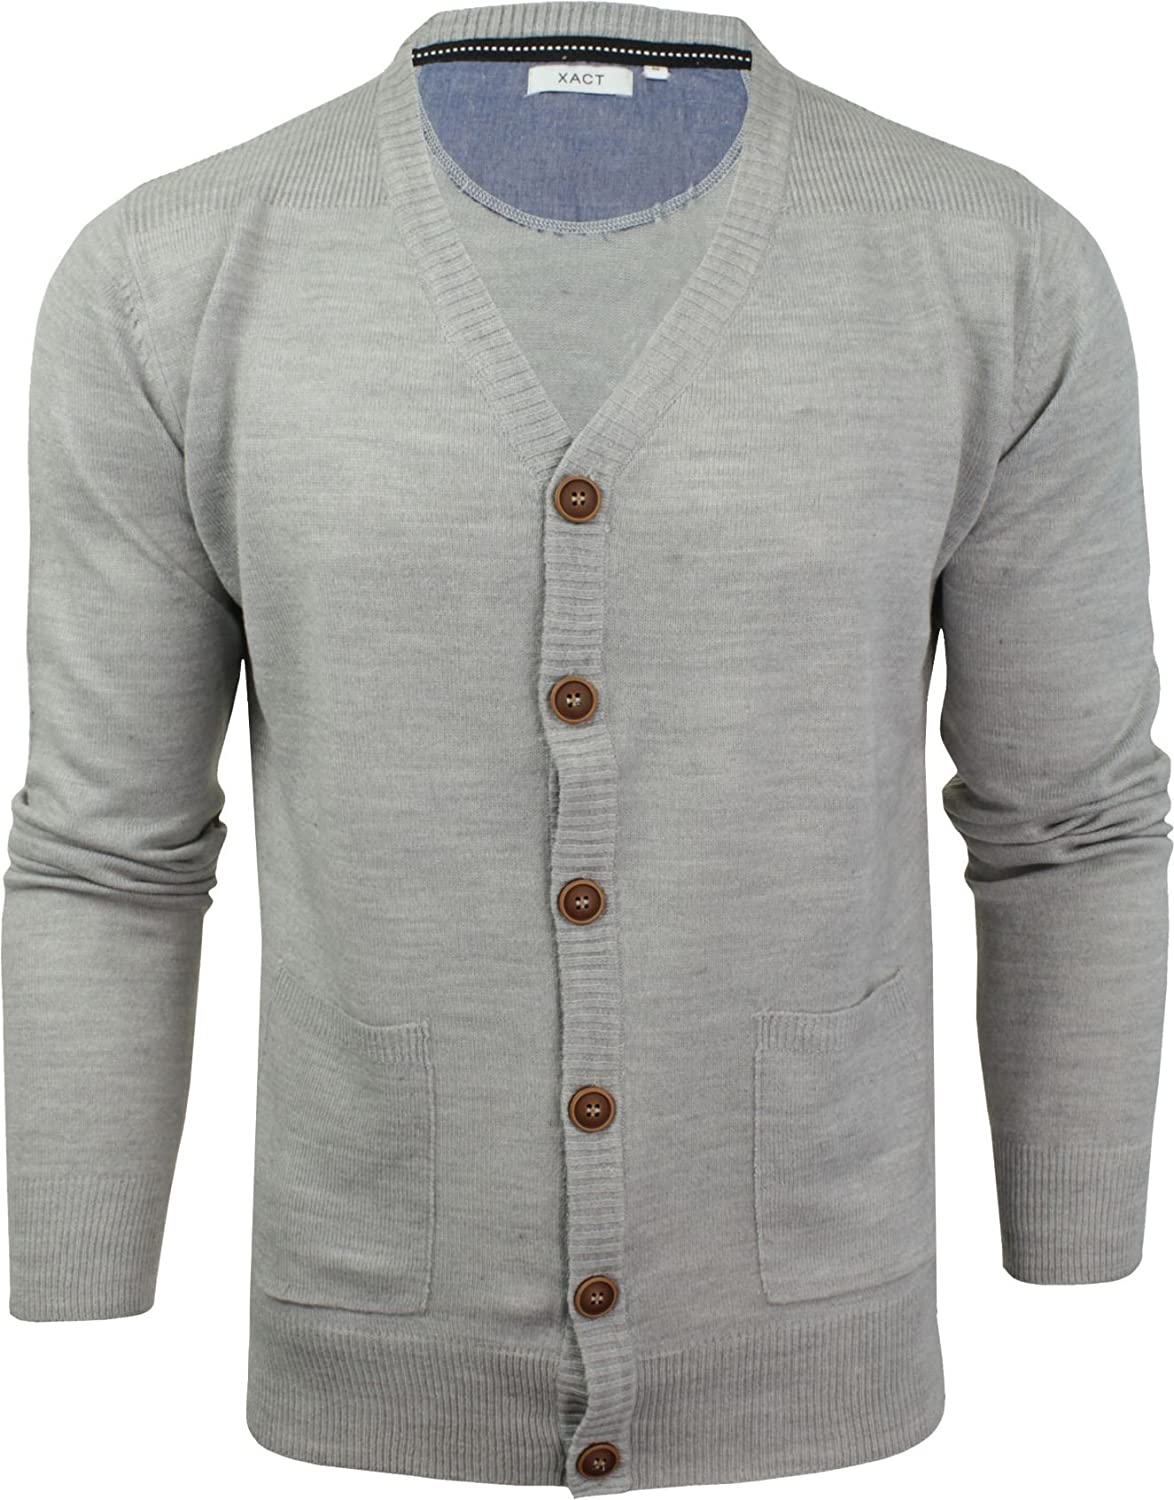 Xact Mens Cardigan Button Front Fashion Jumper